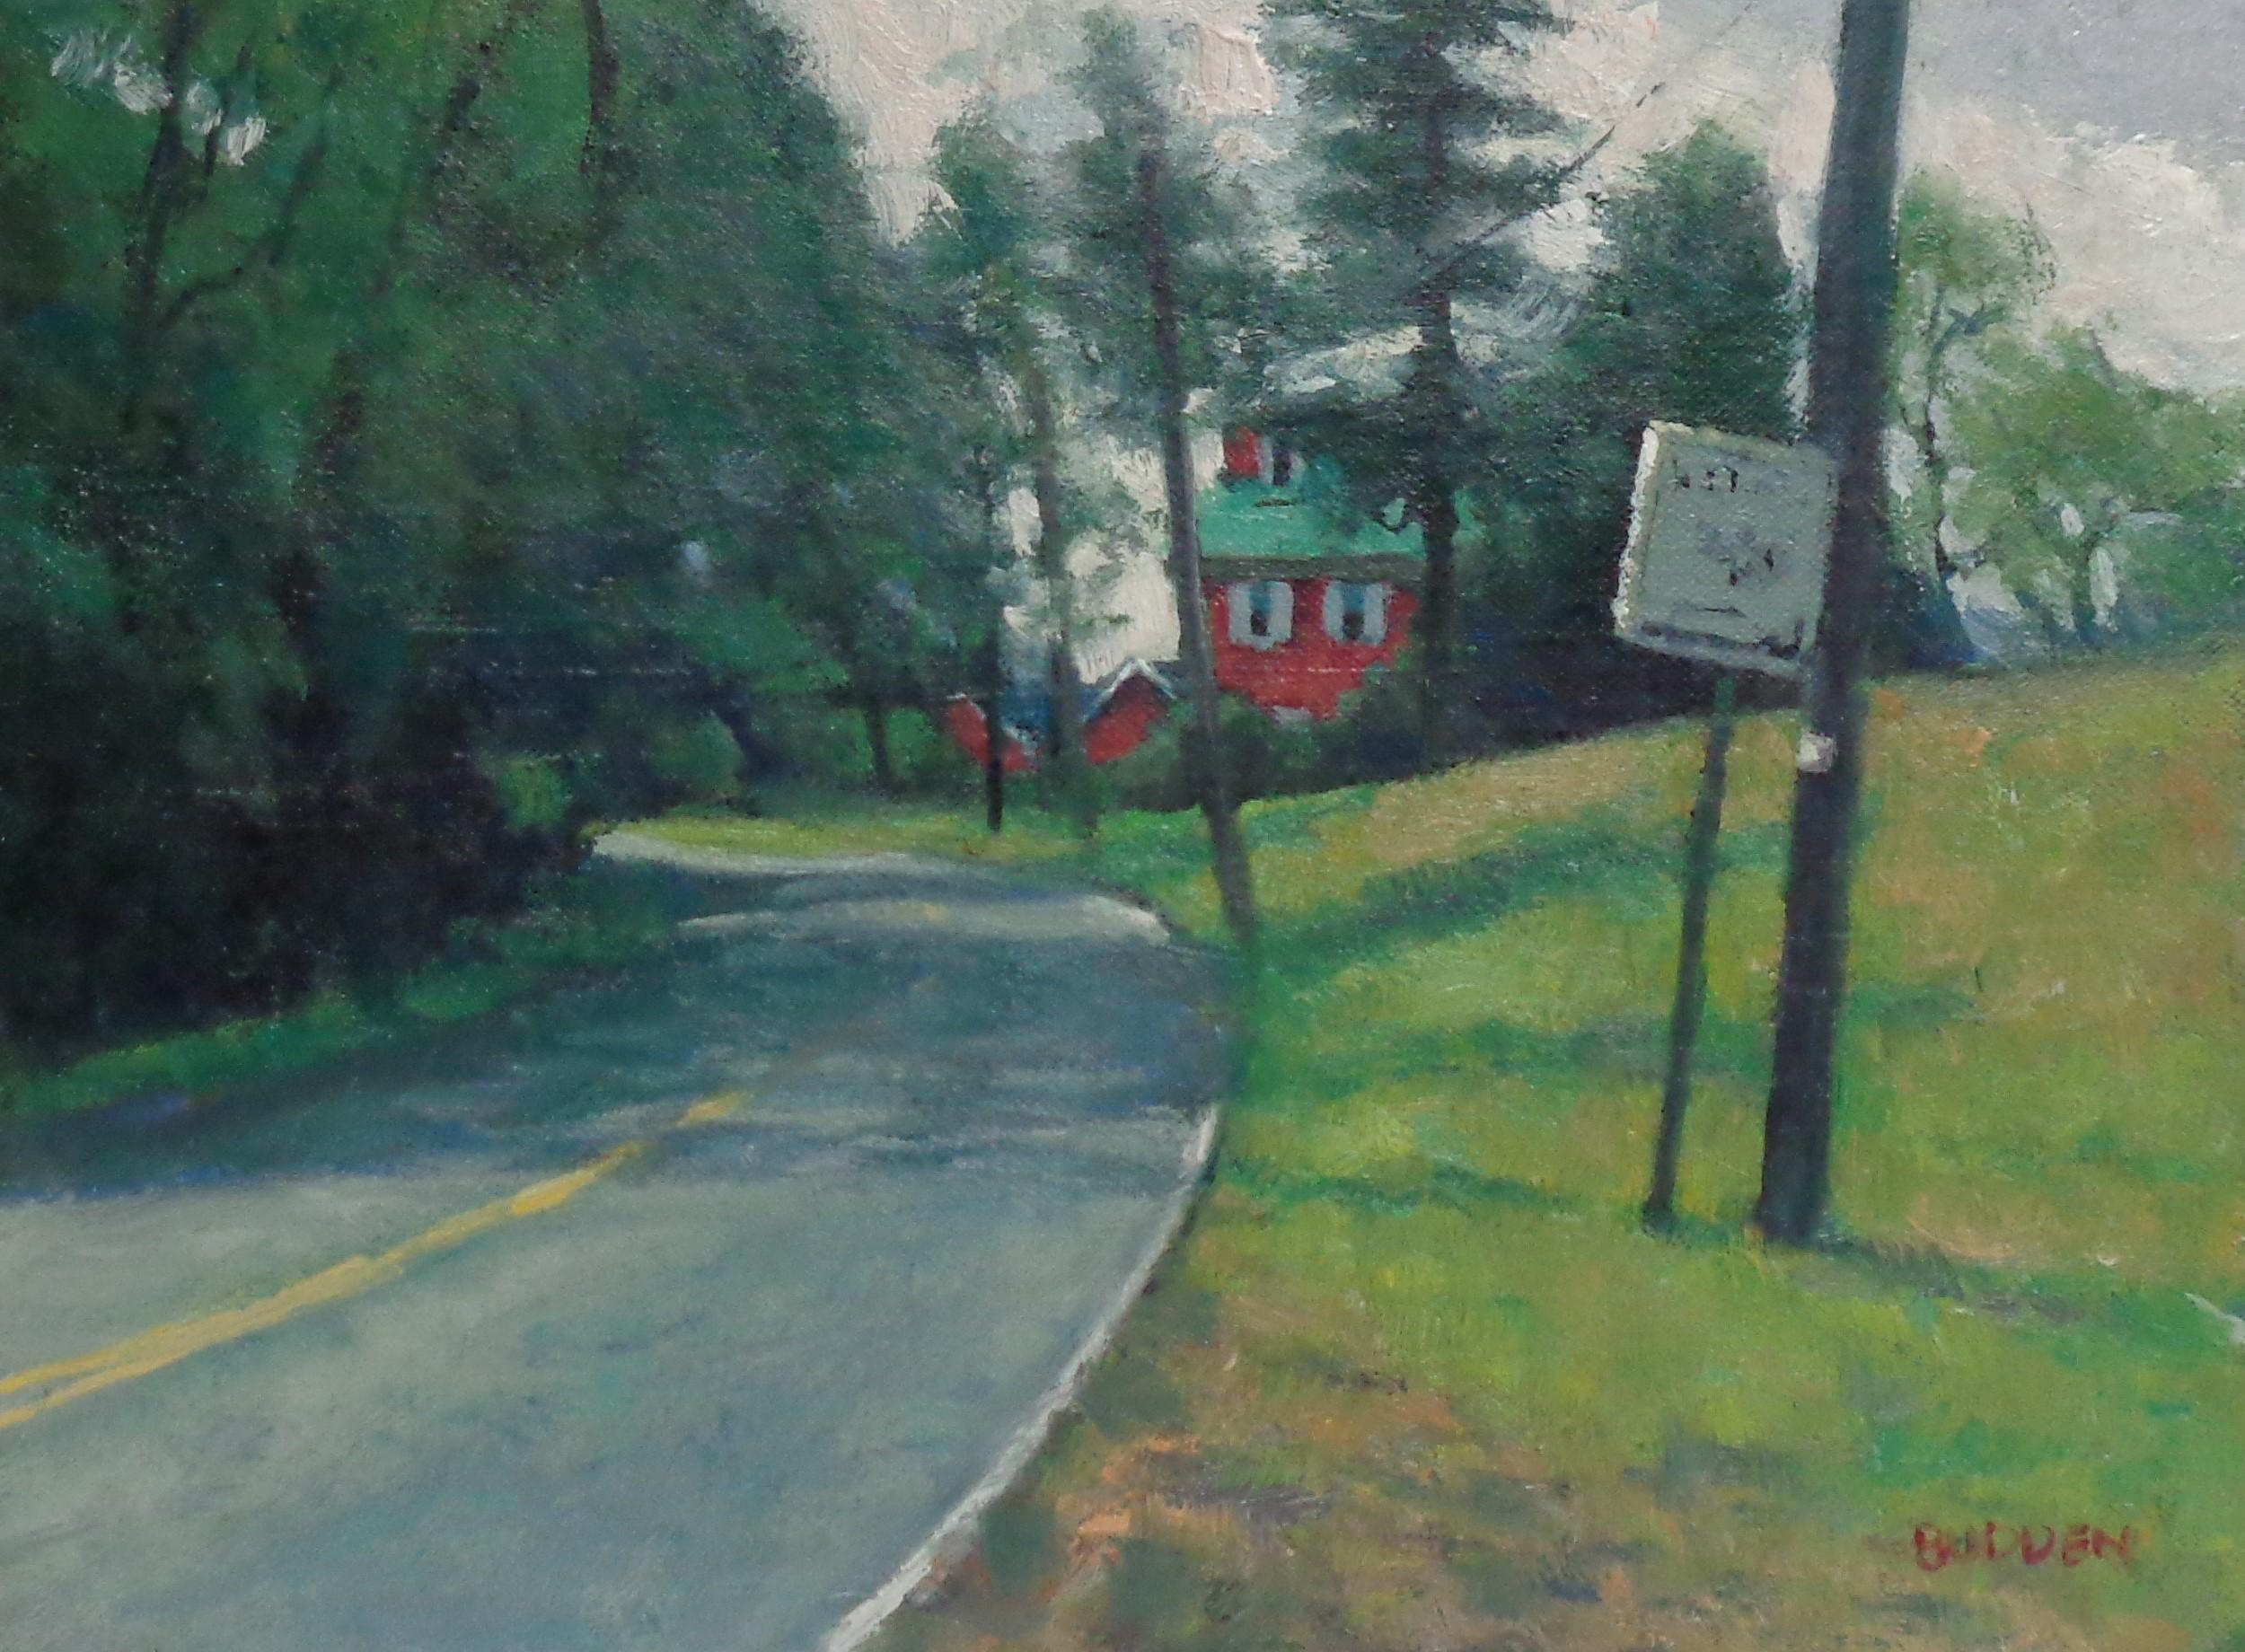 Landscape Oil Painting by Michael Budden Spring Farm Thru Trees